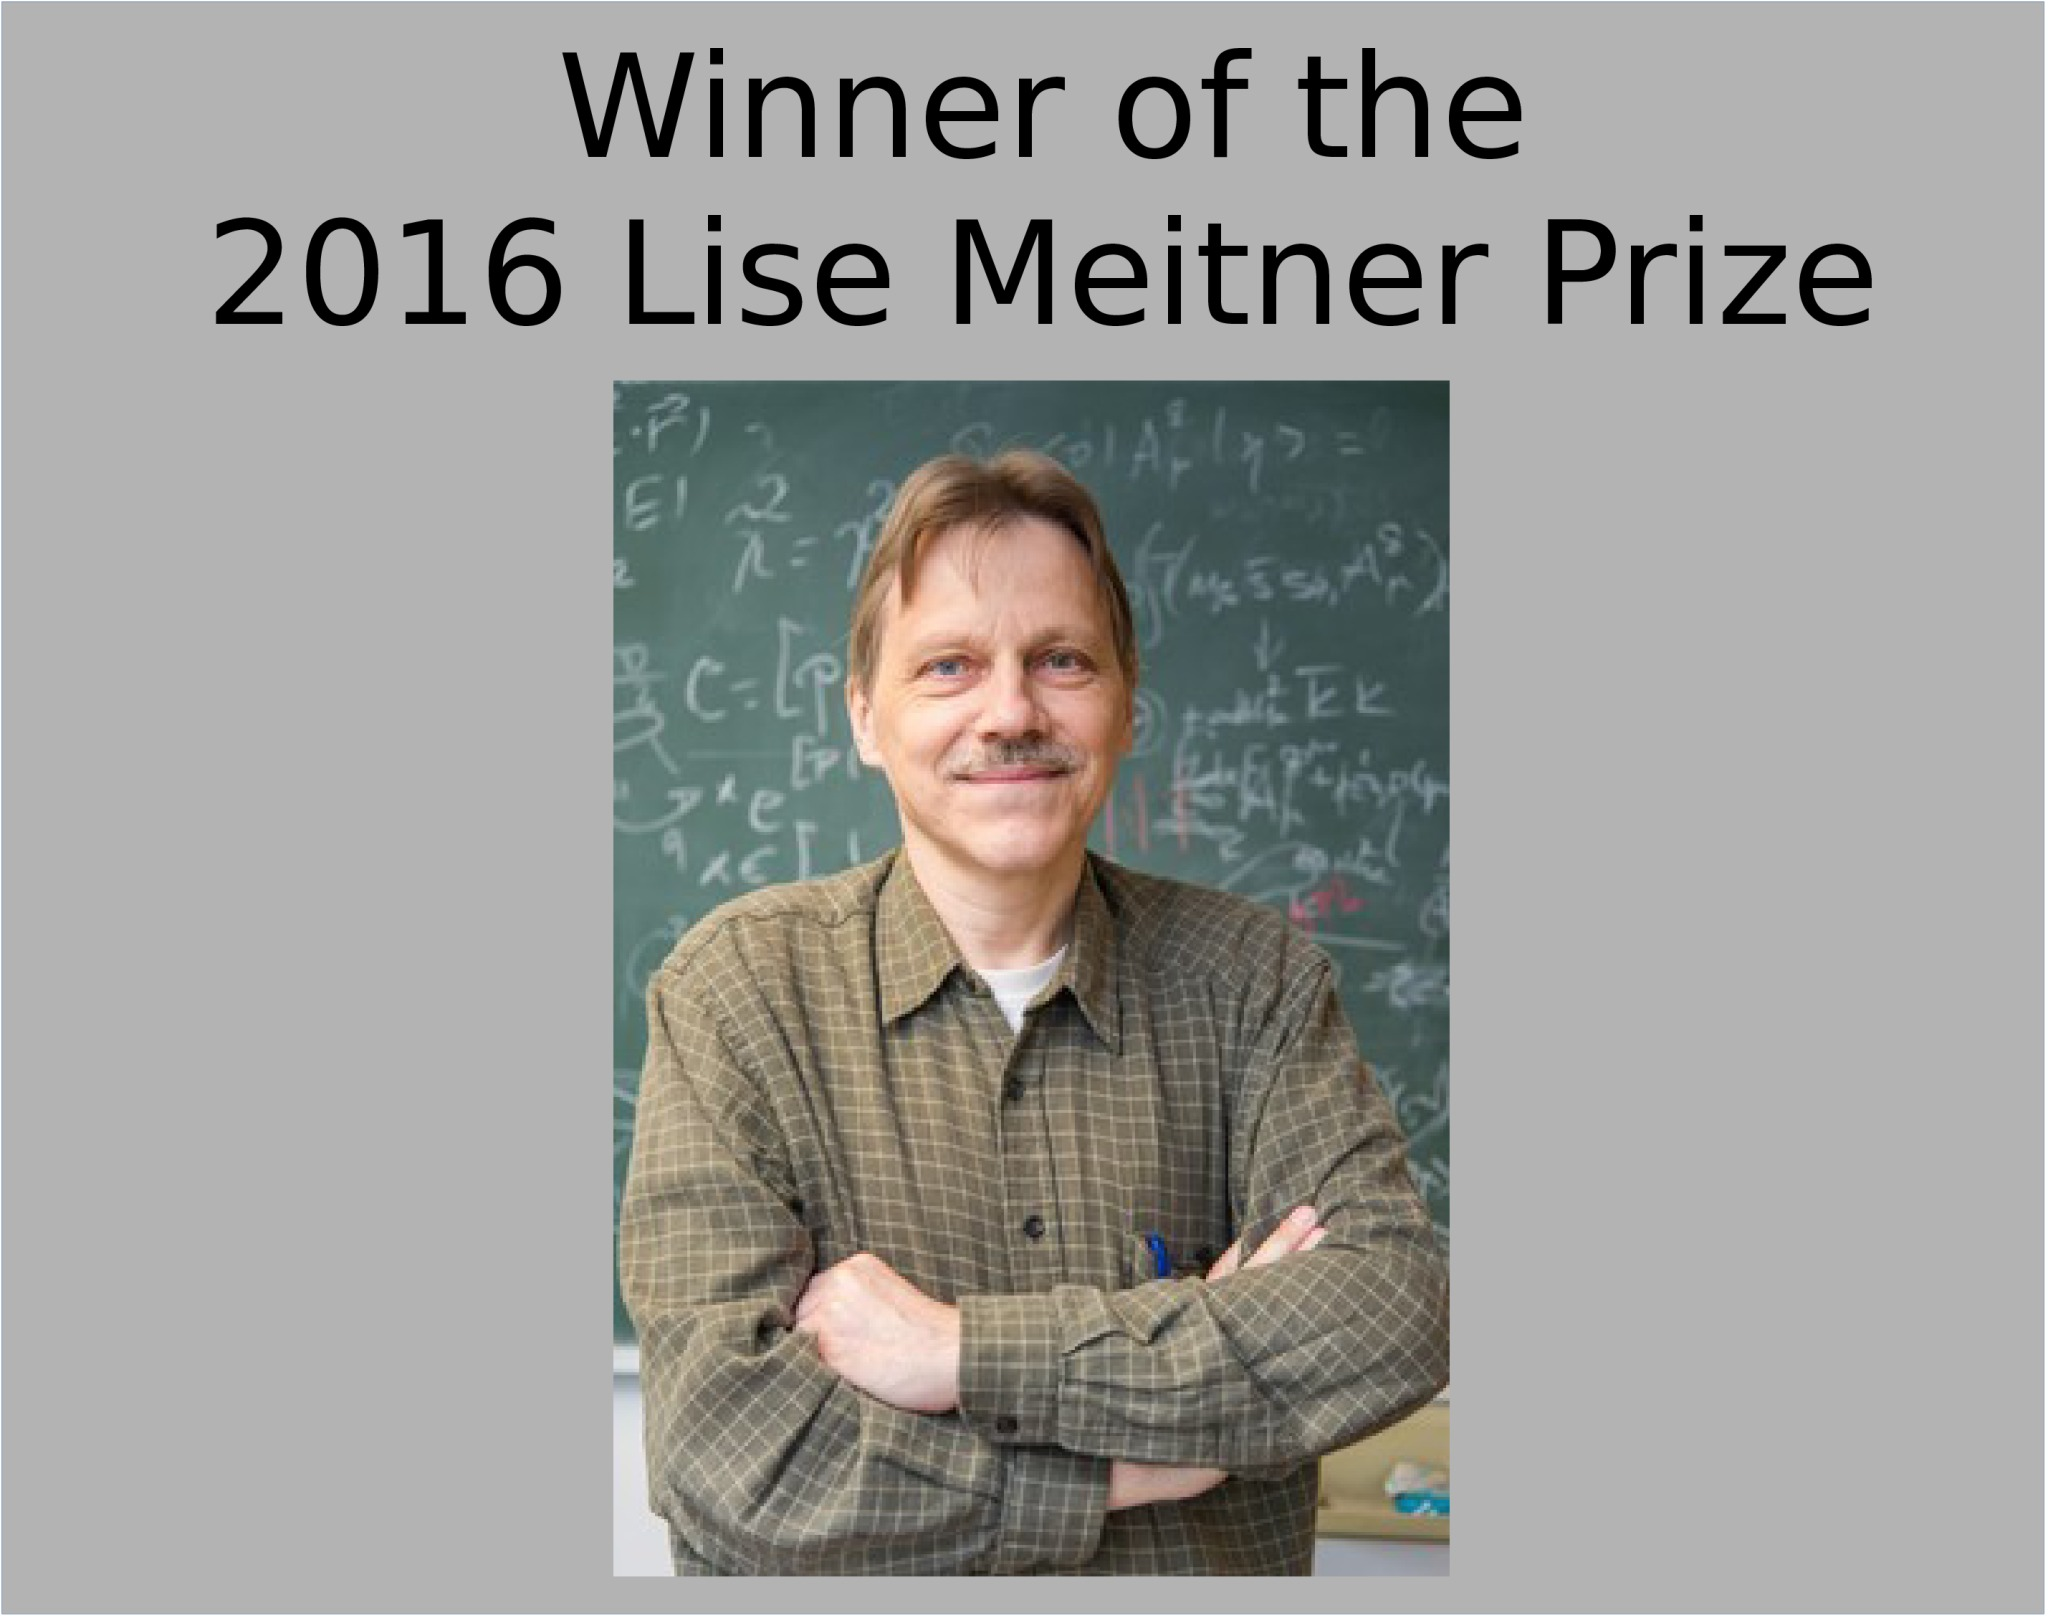 2016 Lise Meitner Prize: photo of prize winner